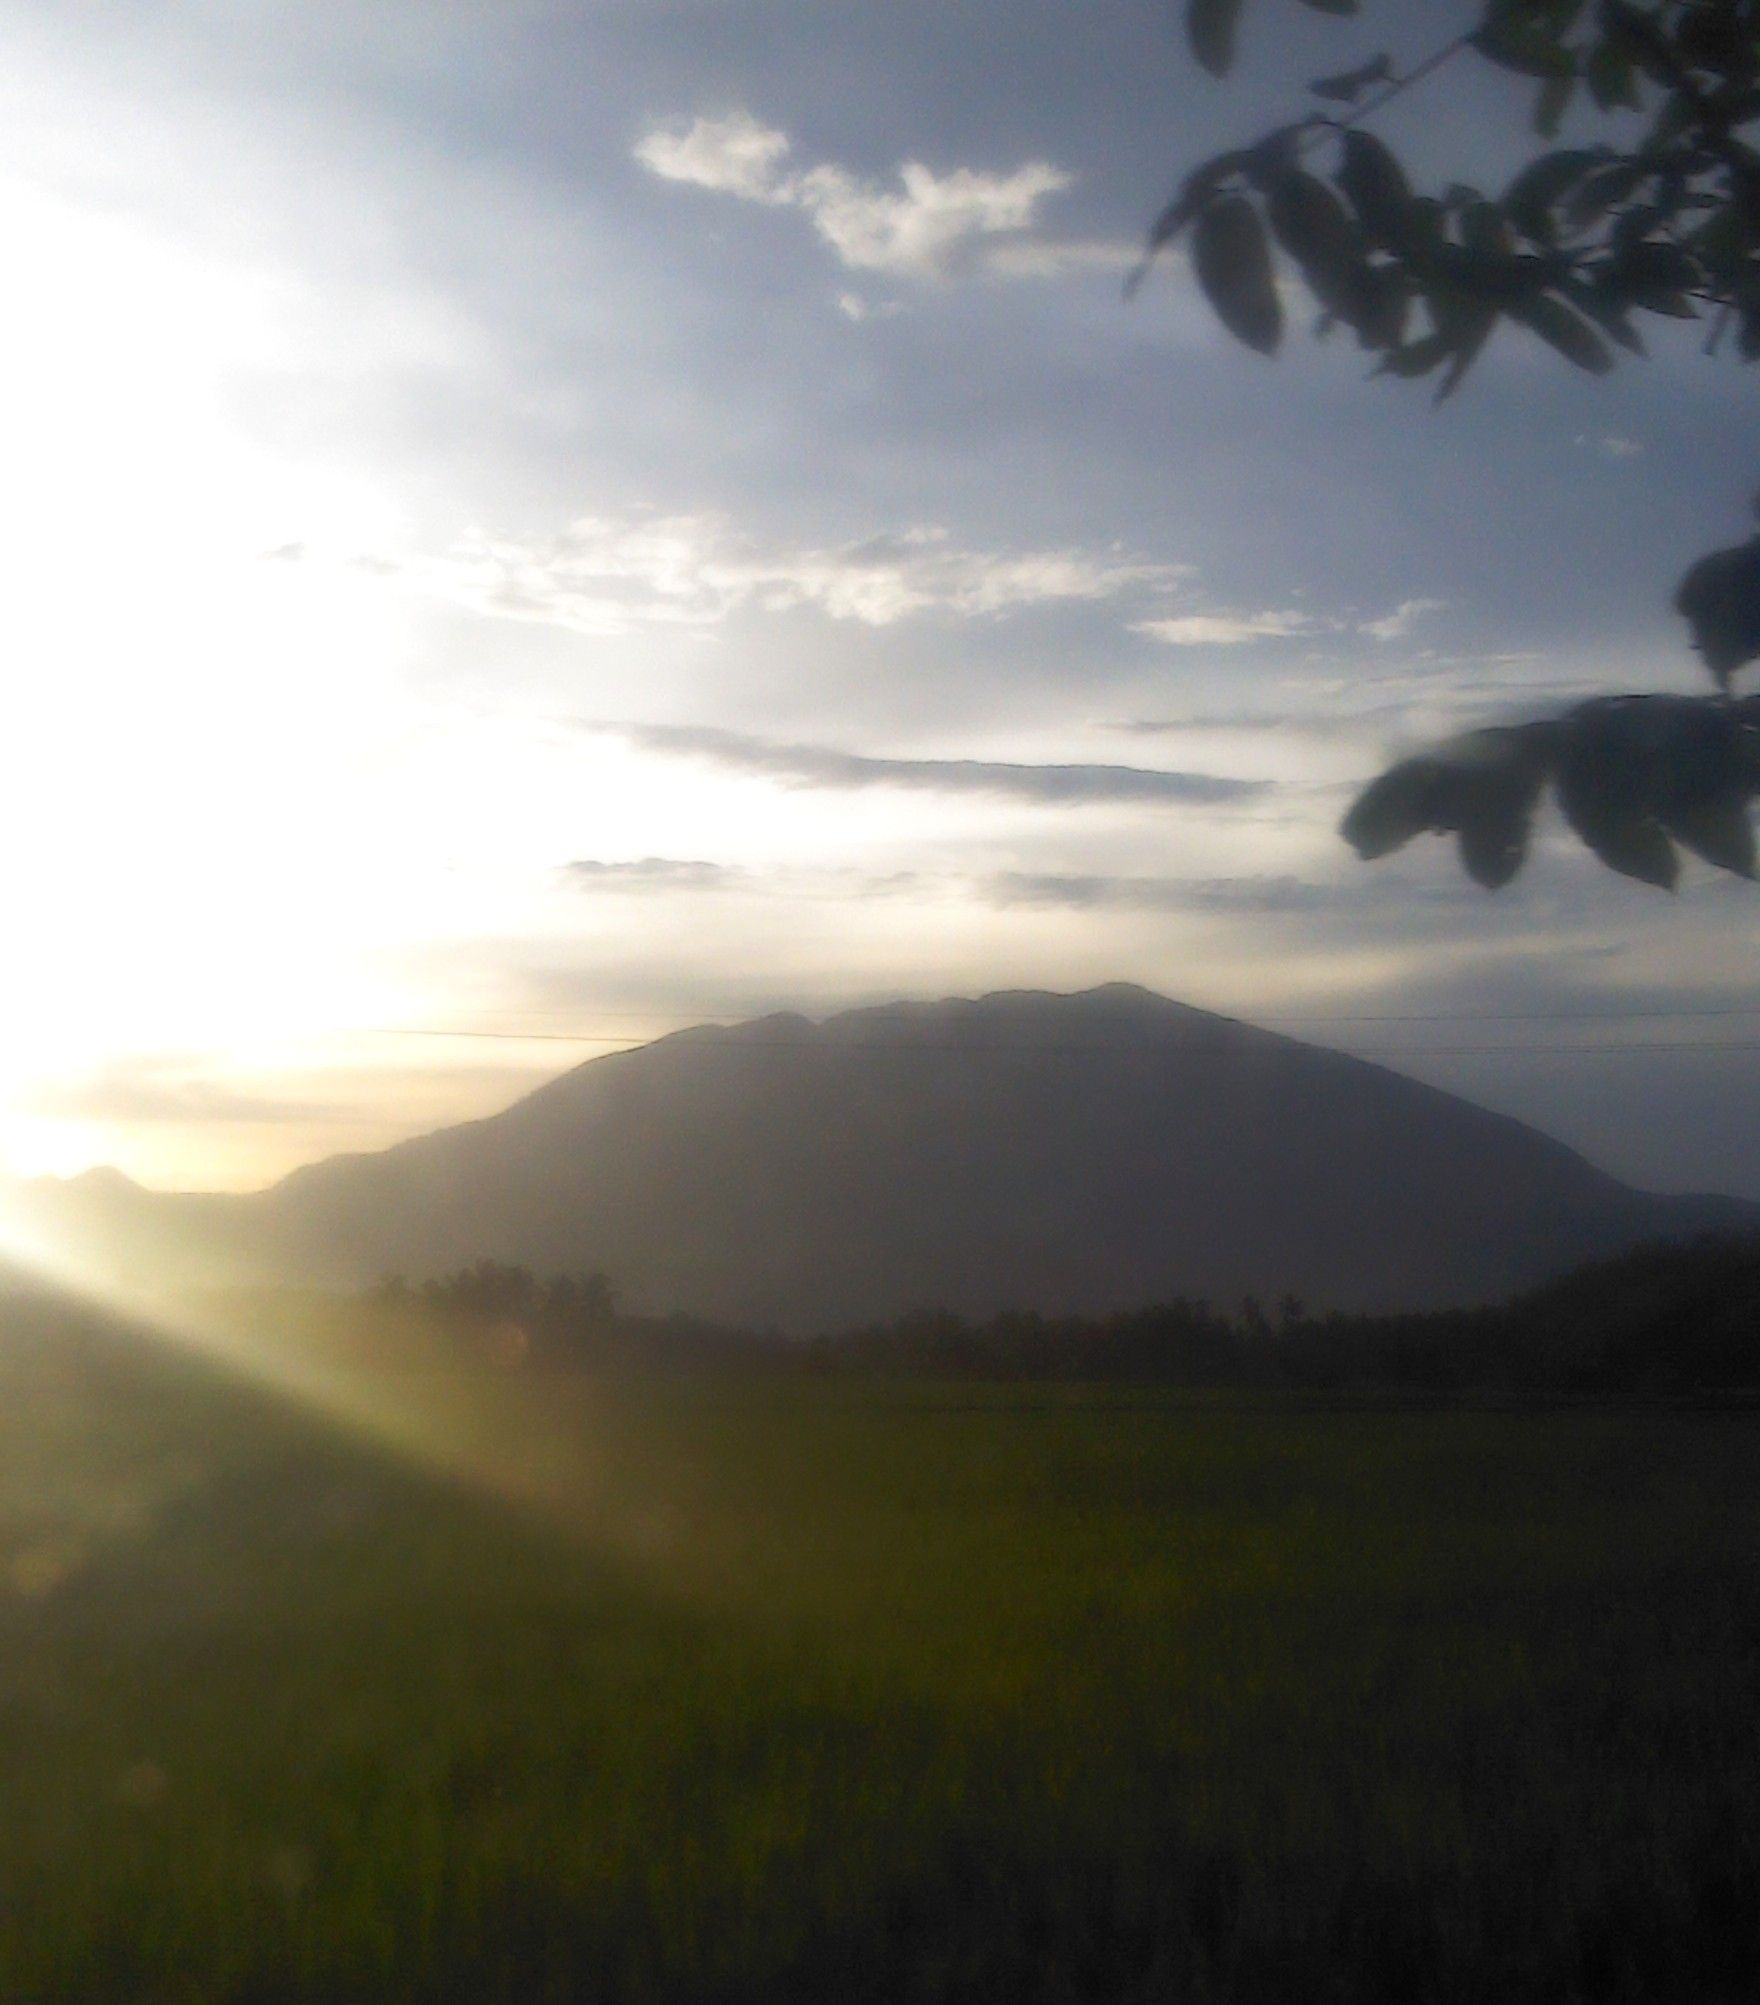 sunrise by the mountain